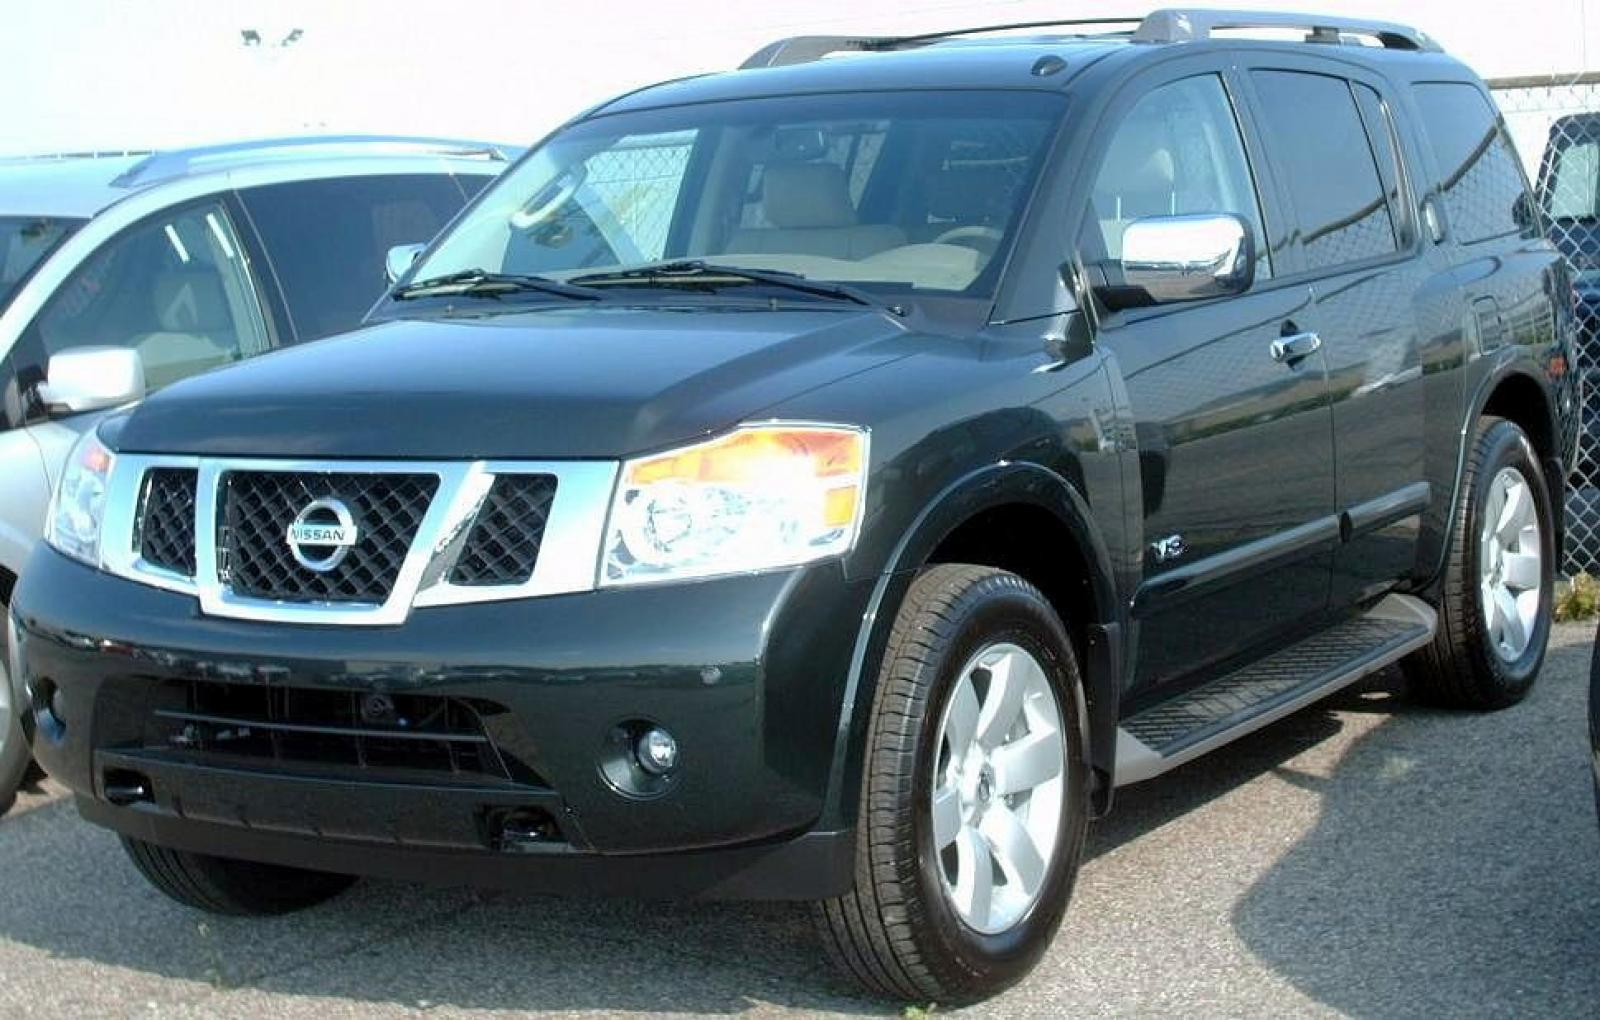 2008 nissan armada information and photos zombiedrive. Black Bedroom Furniture Sets. Home Design Ideas